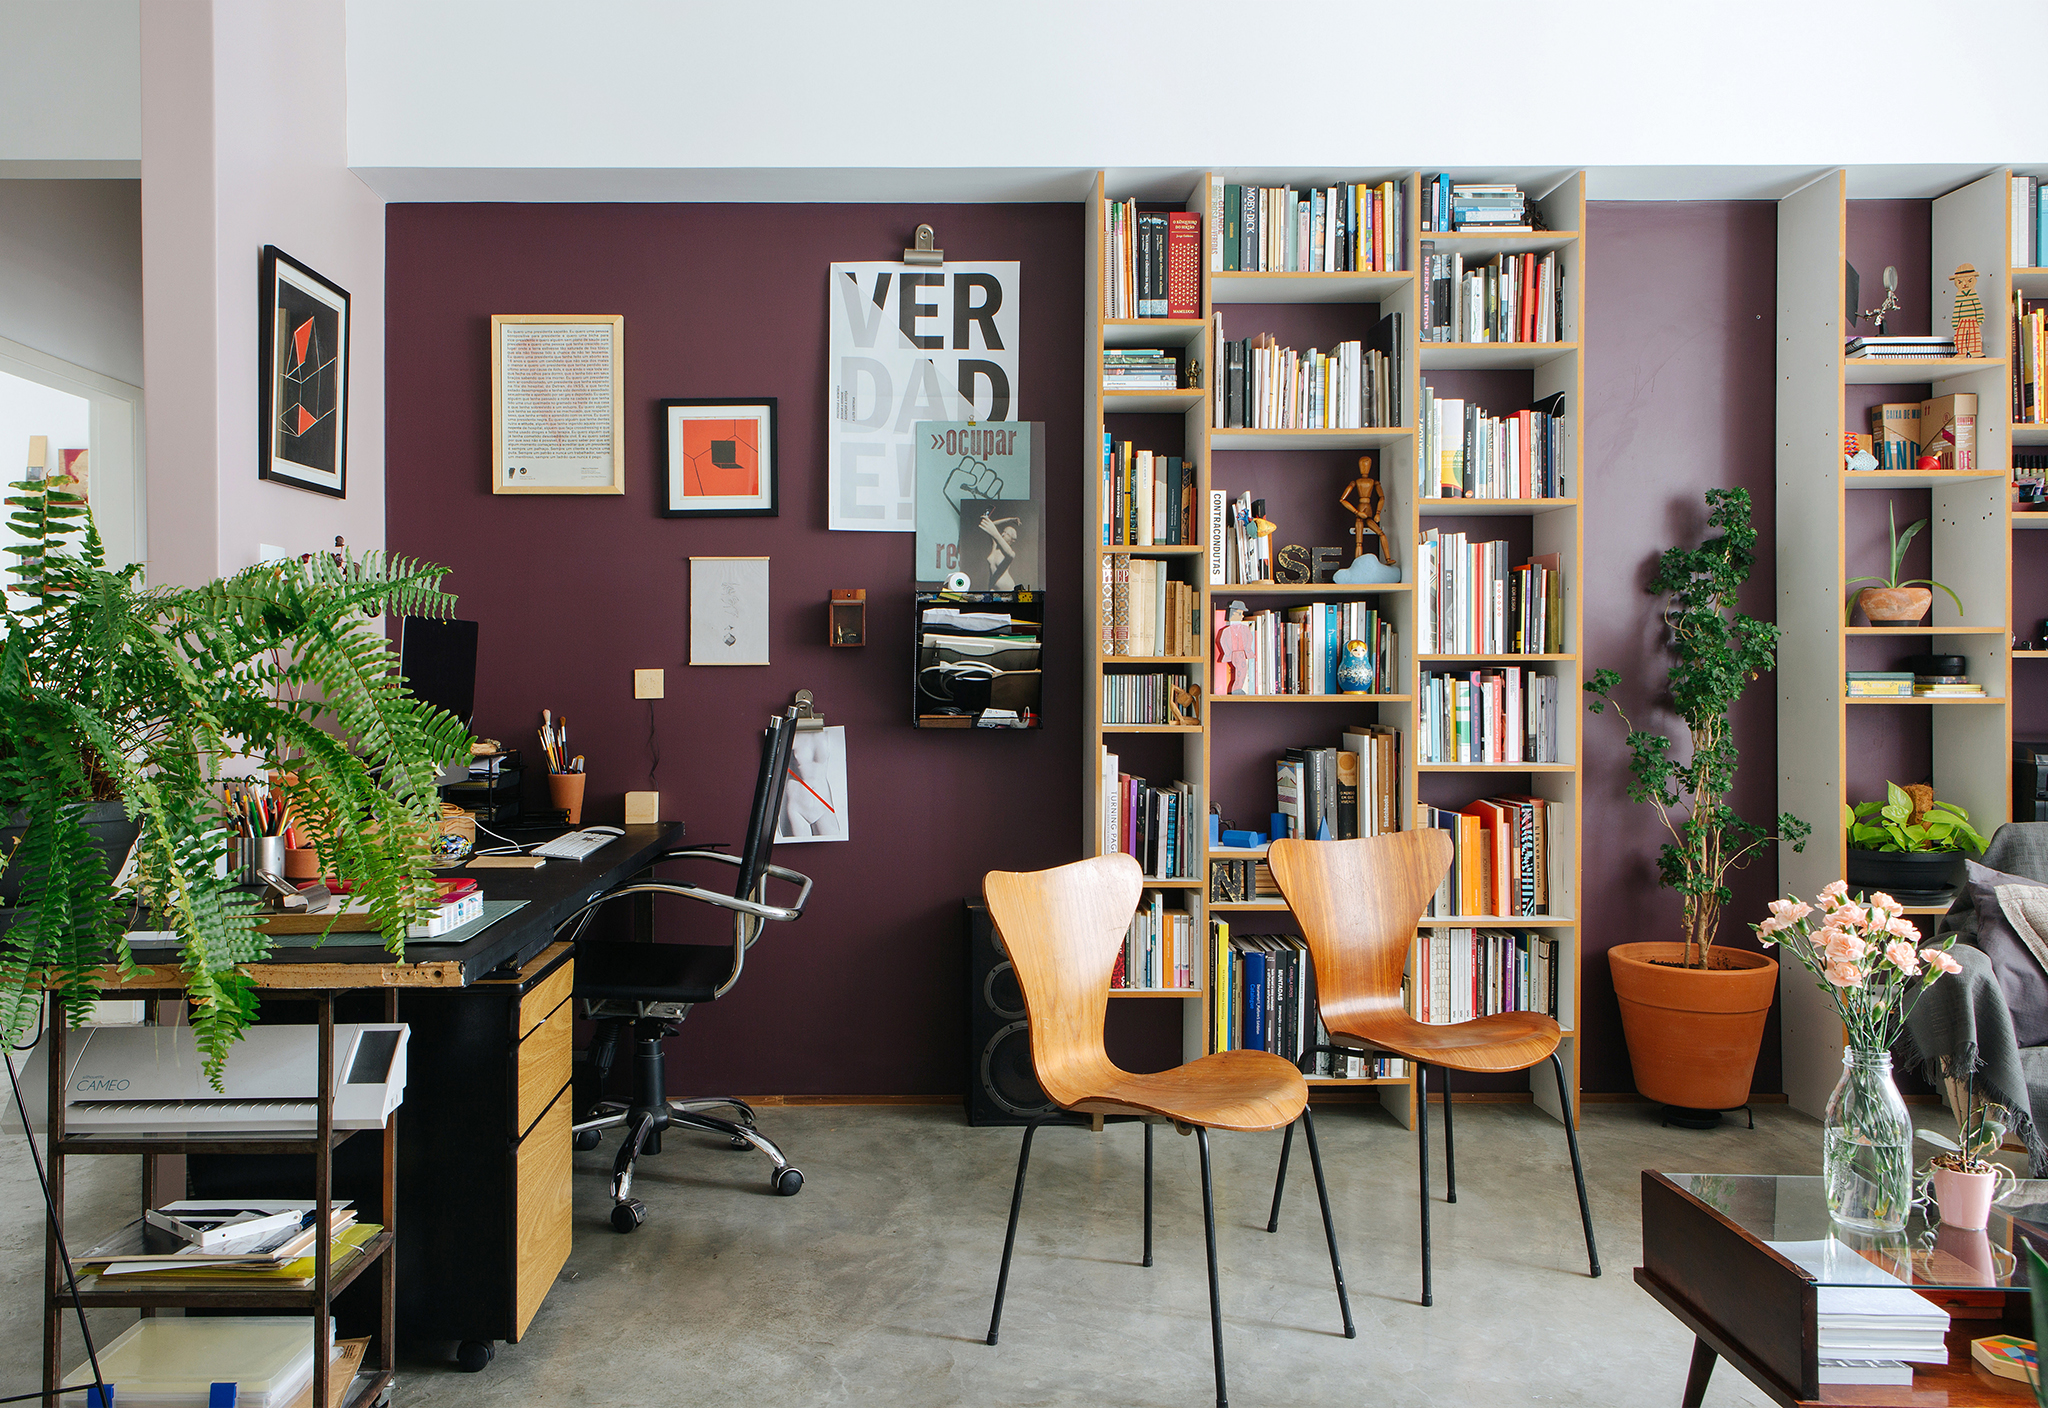 Apartamento com home office na sala e paredes coloridas